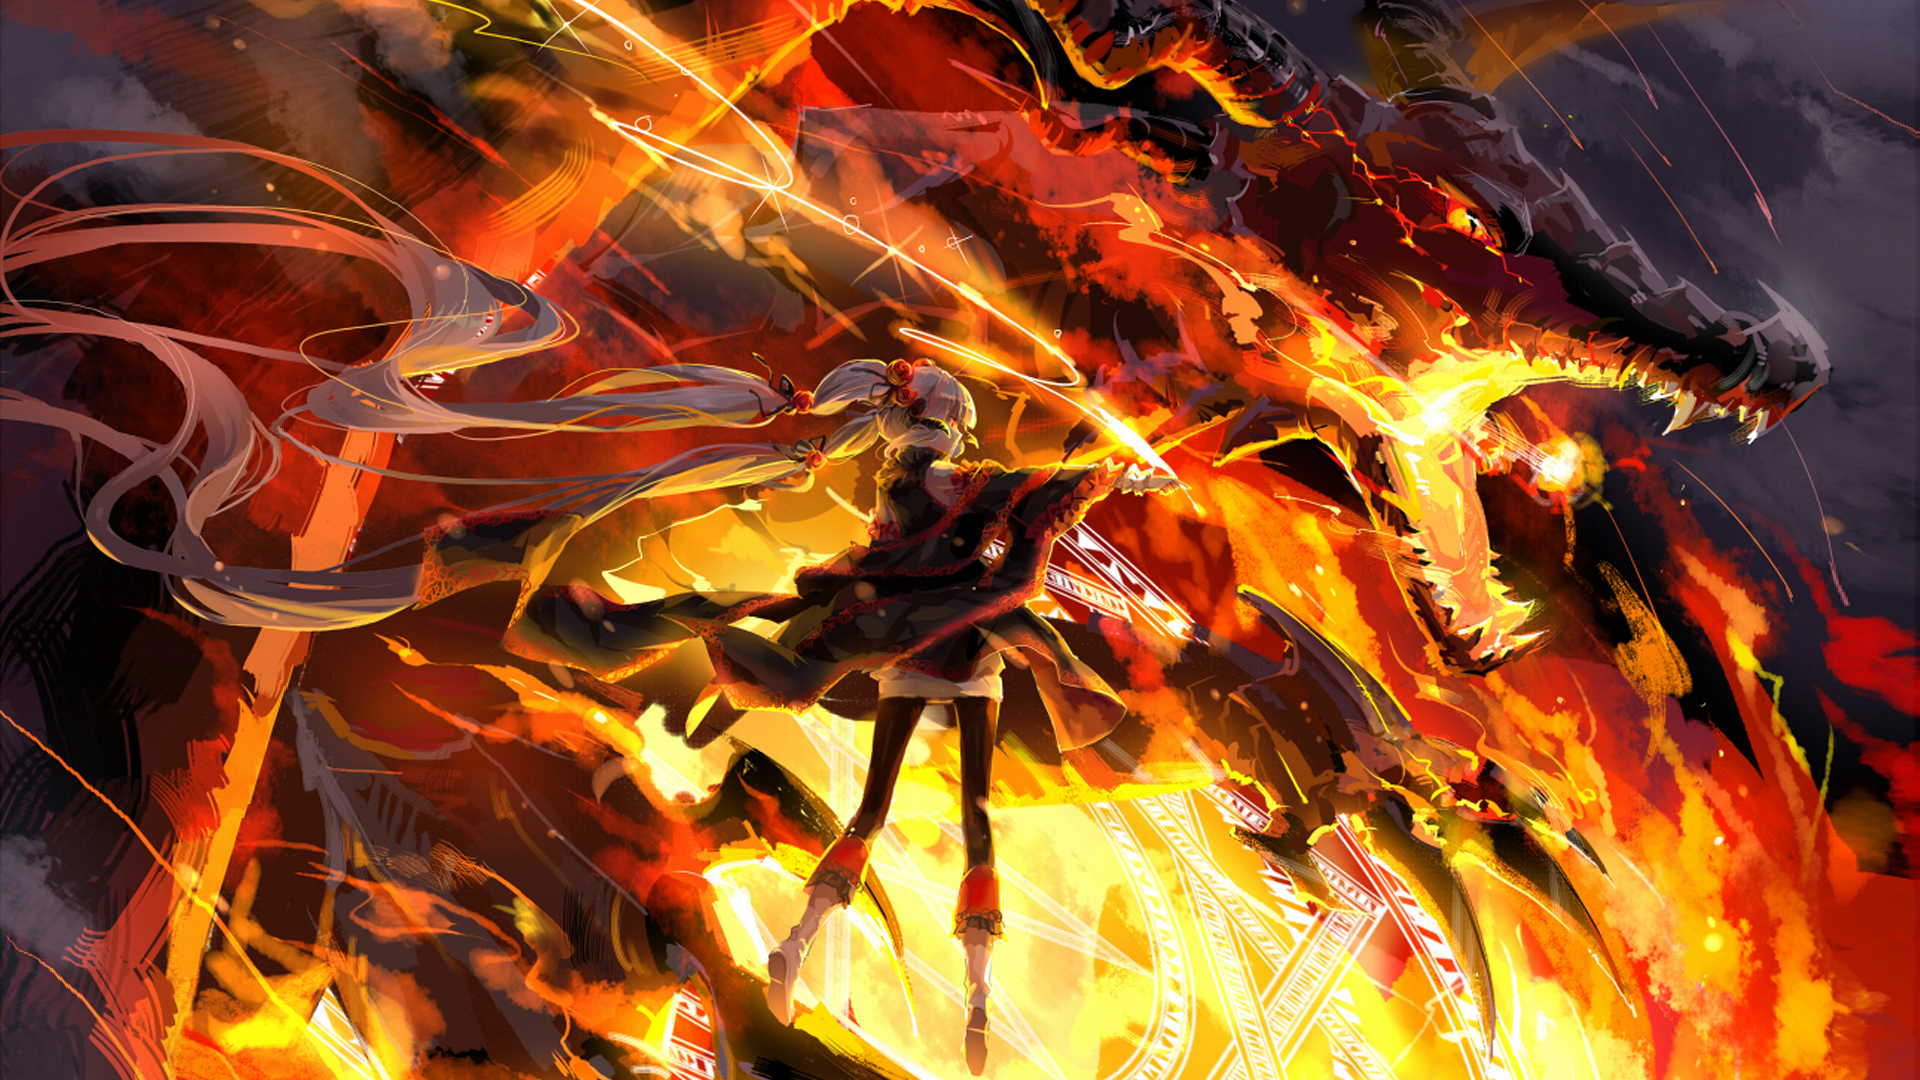 Fire Dragon Wallpaper Hd Images amp Pictures   Becuo 1920x1080